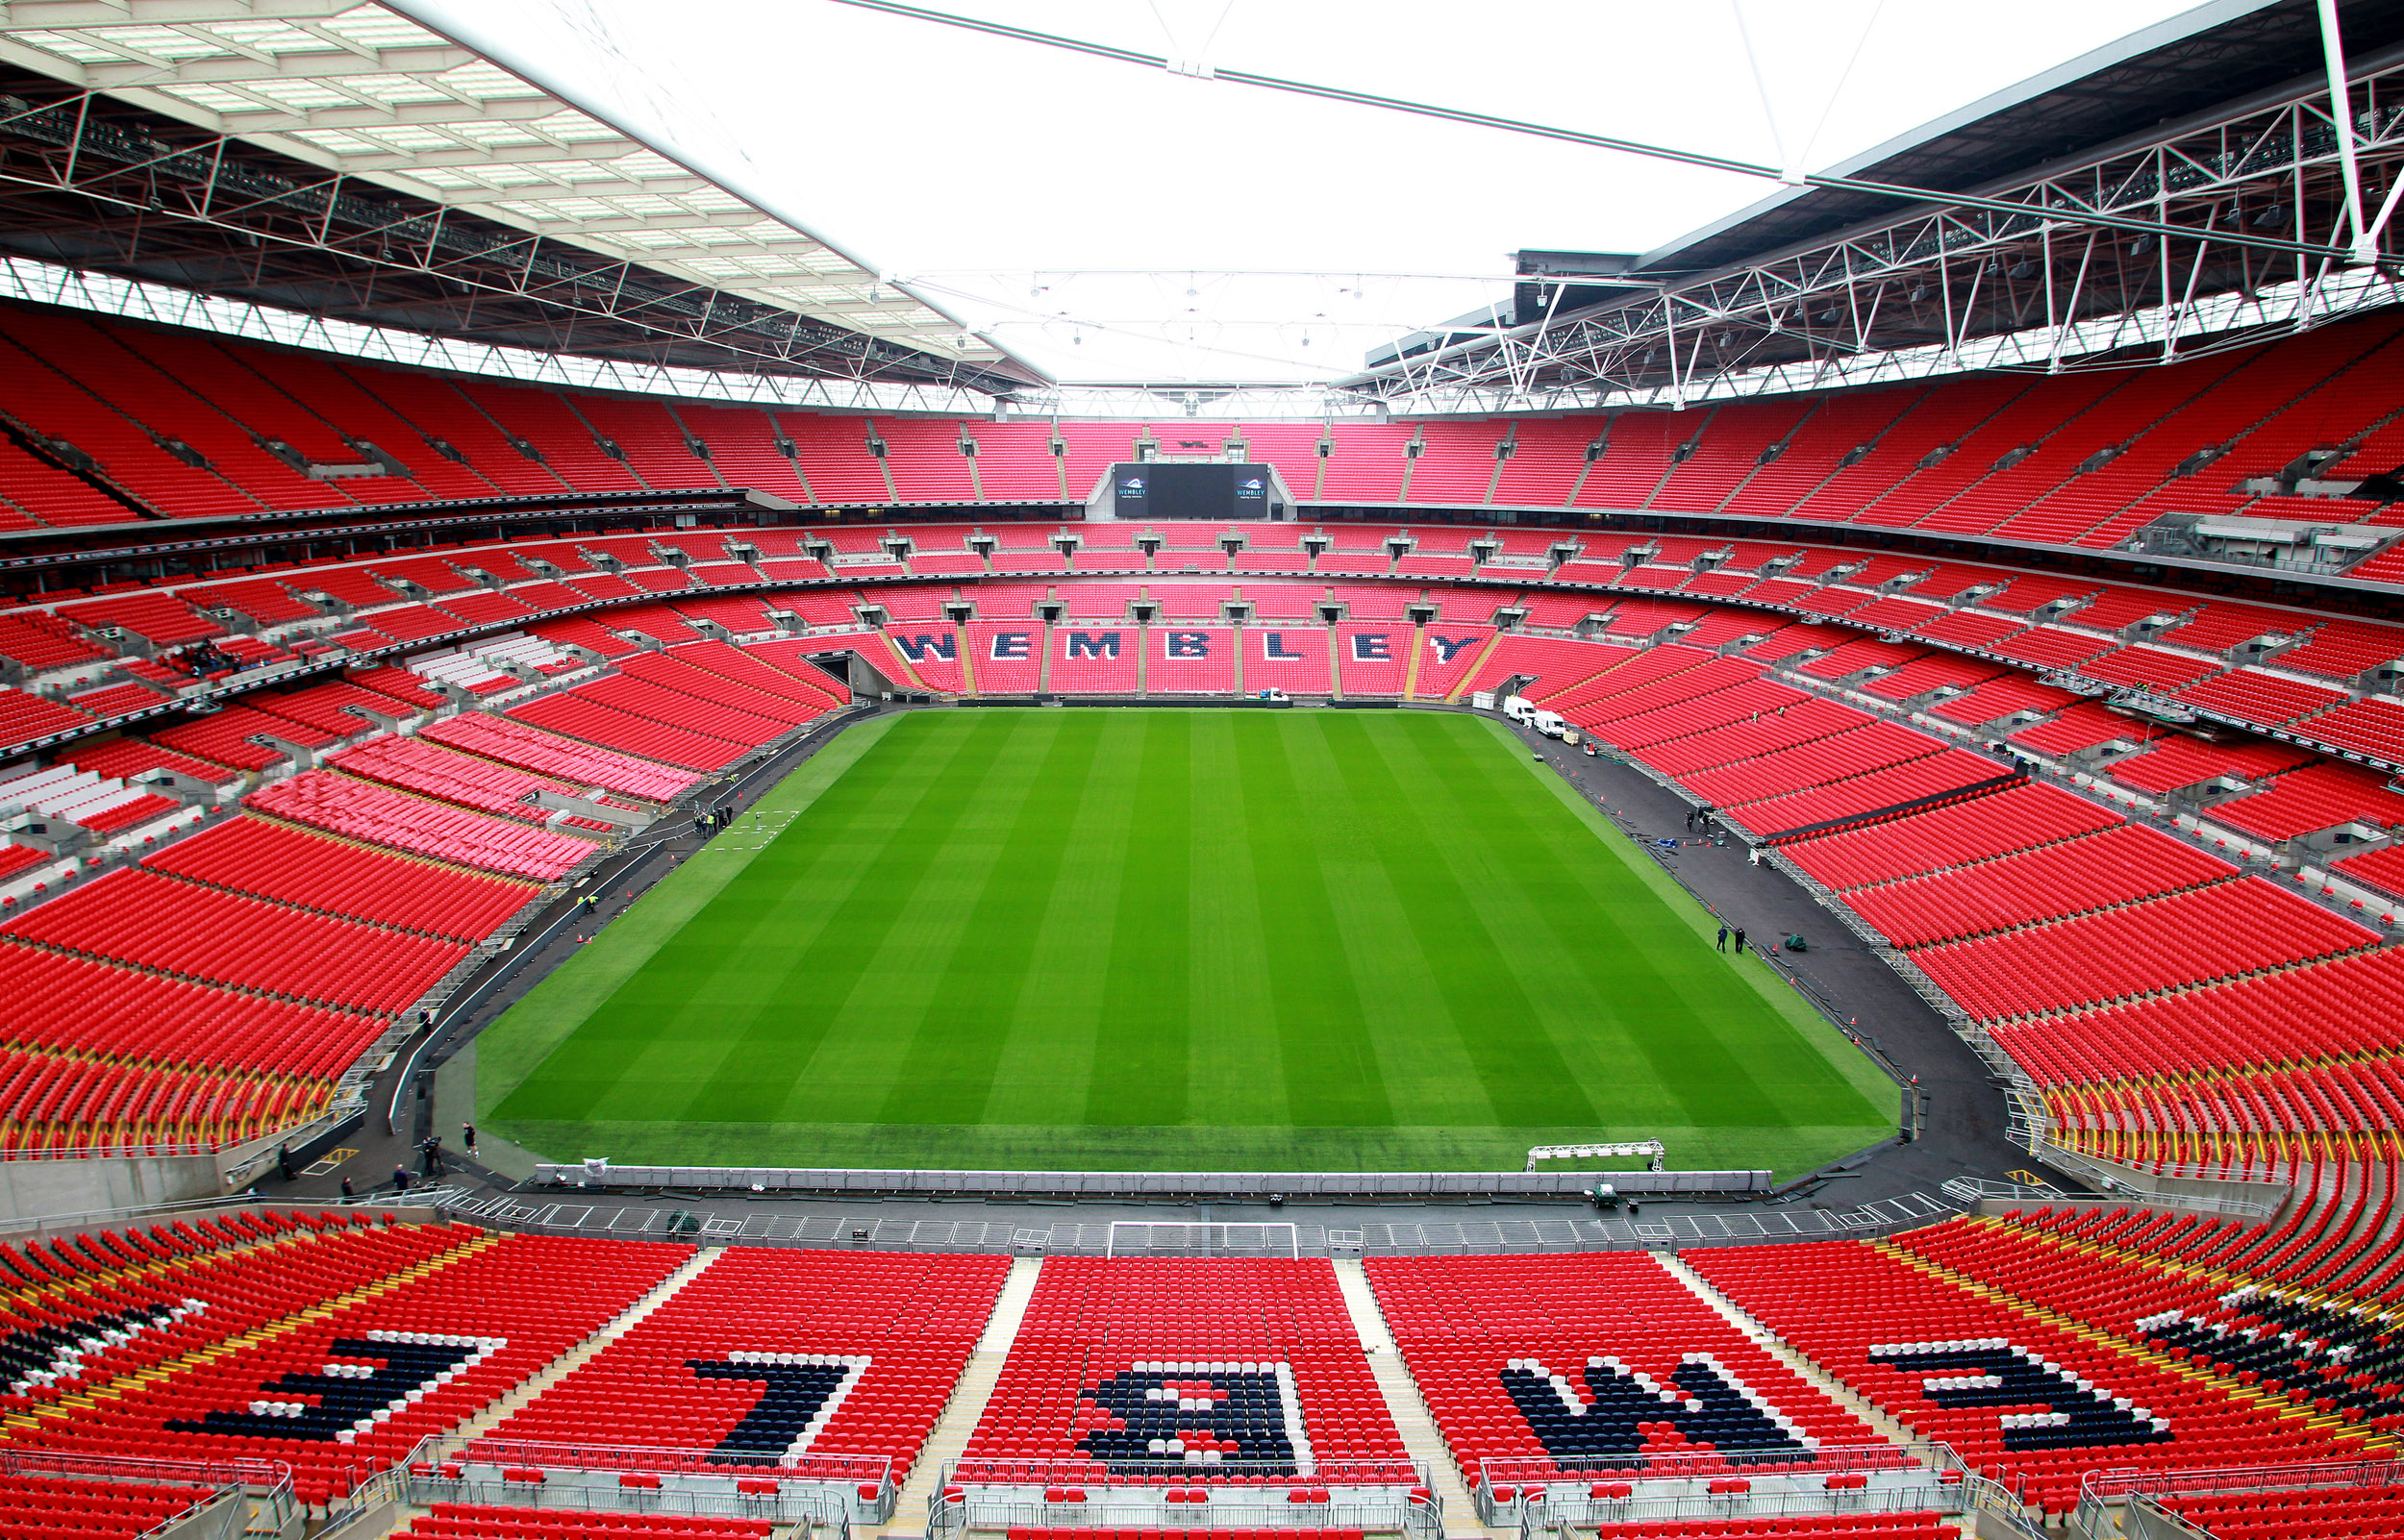 Touring Wembley Stadium